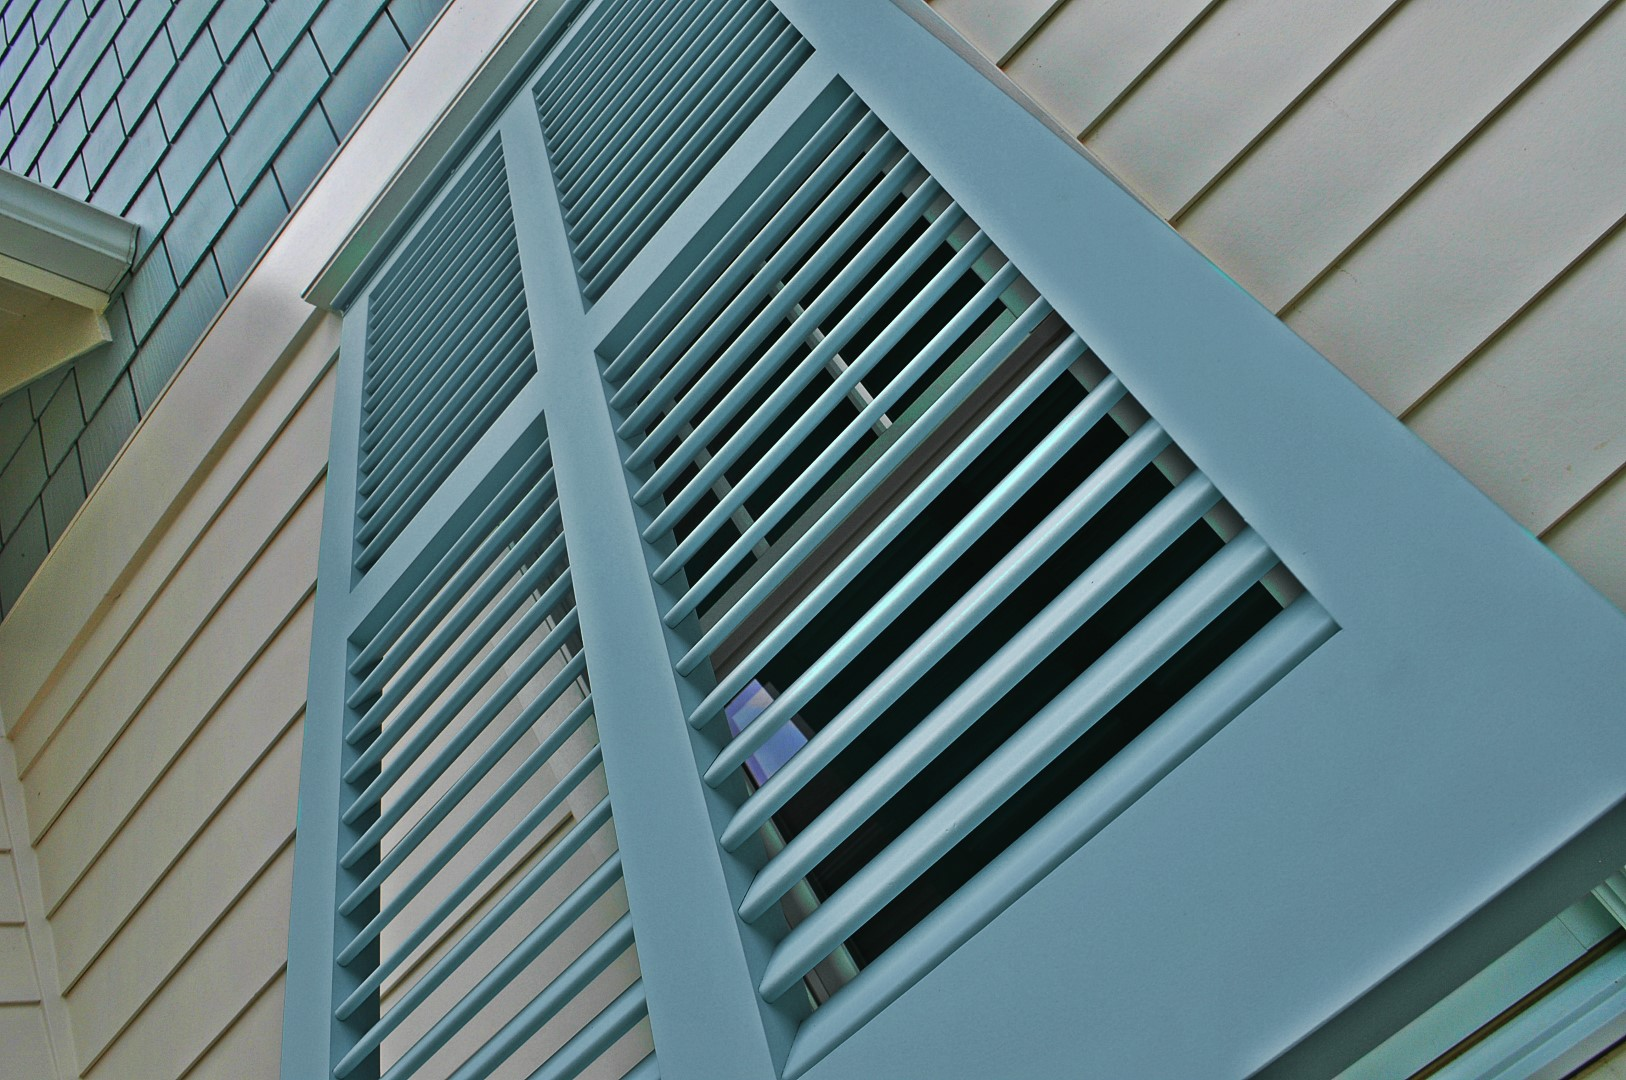 Window treatment idea - Bermuda or Bahama shutter for exterior.